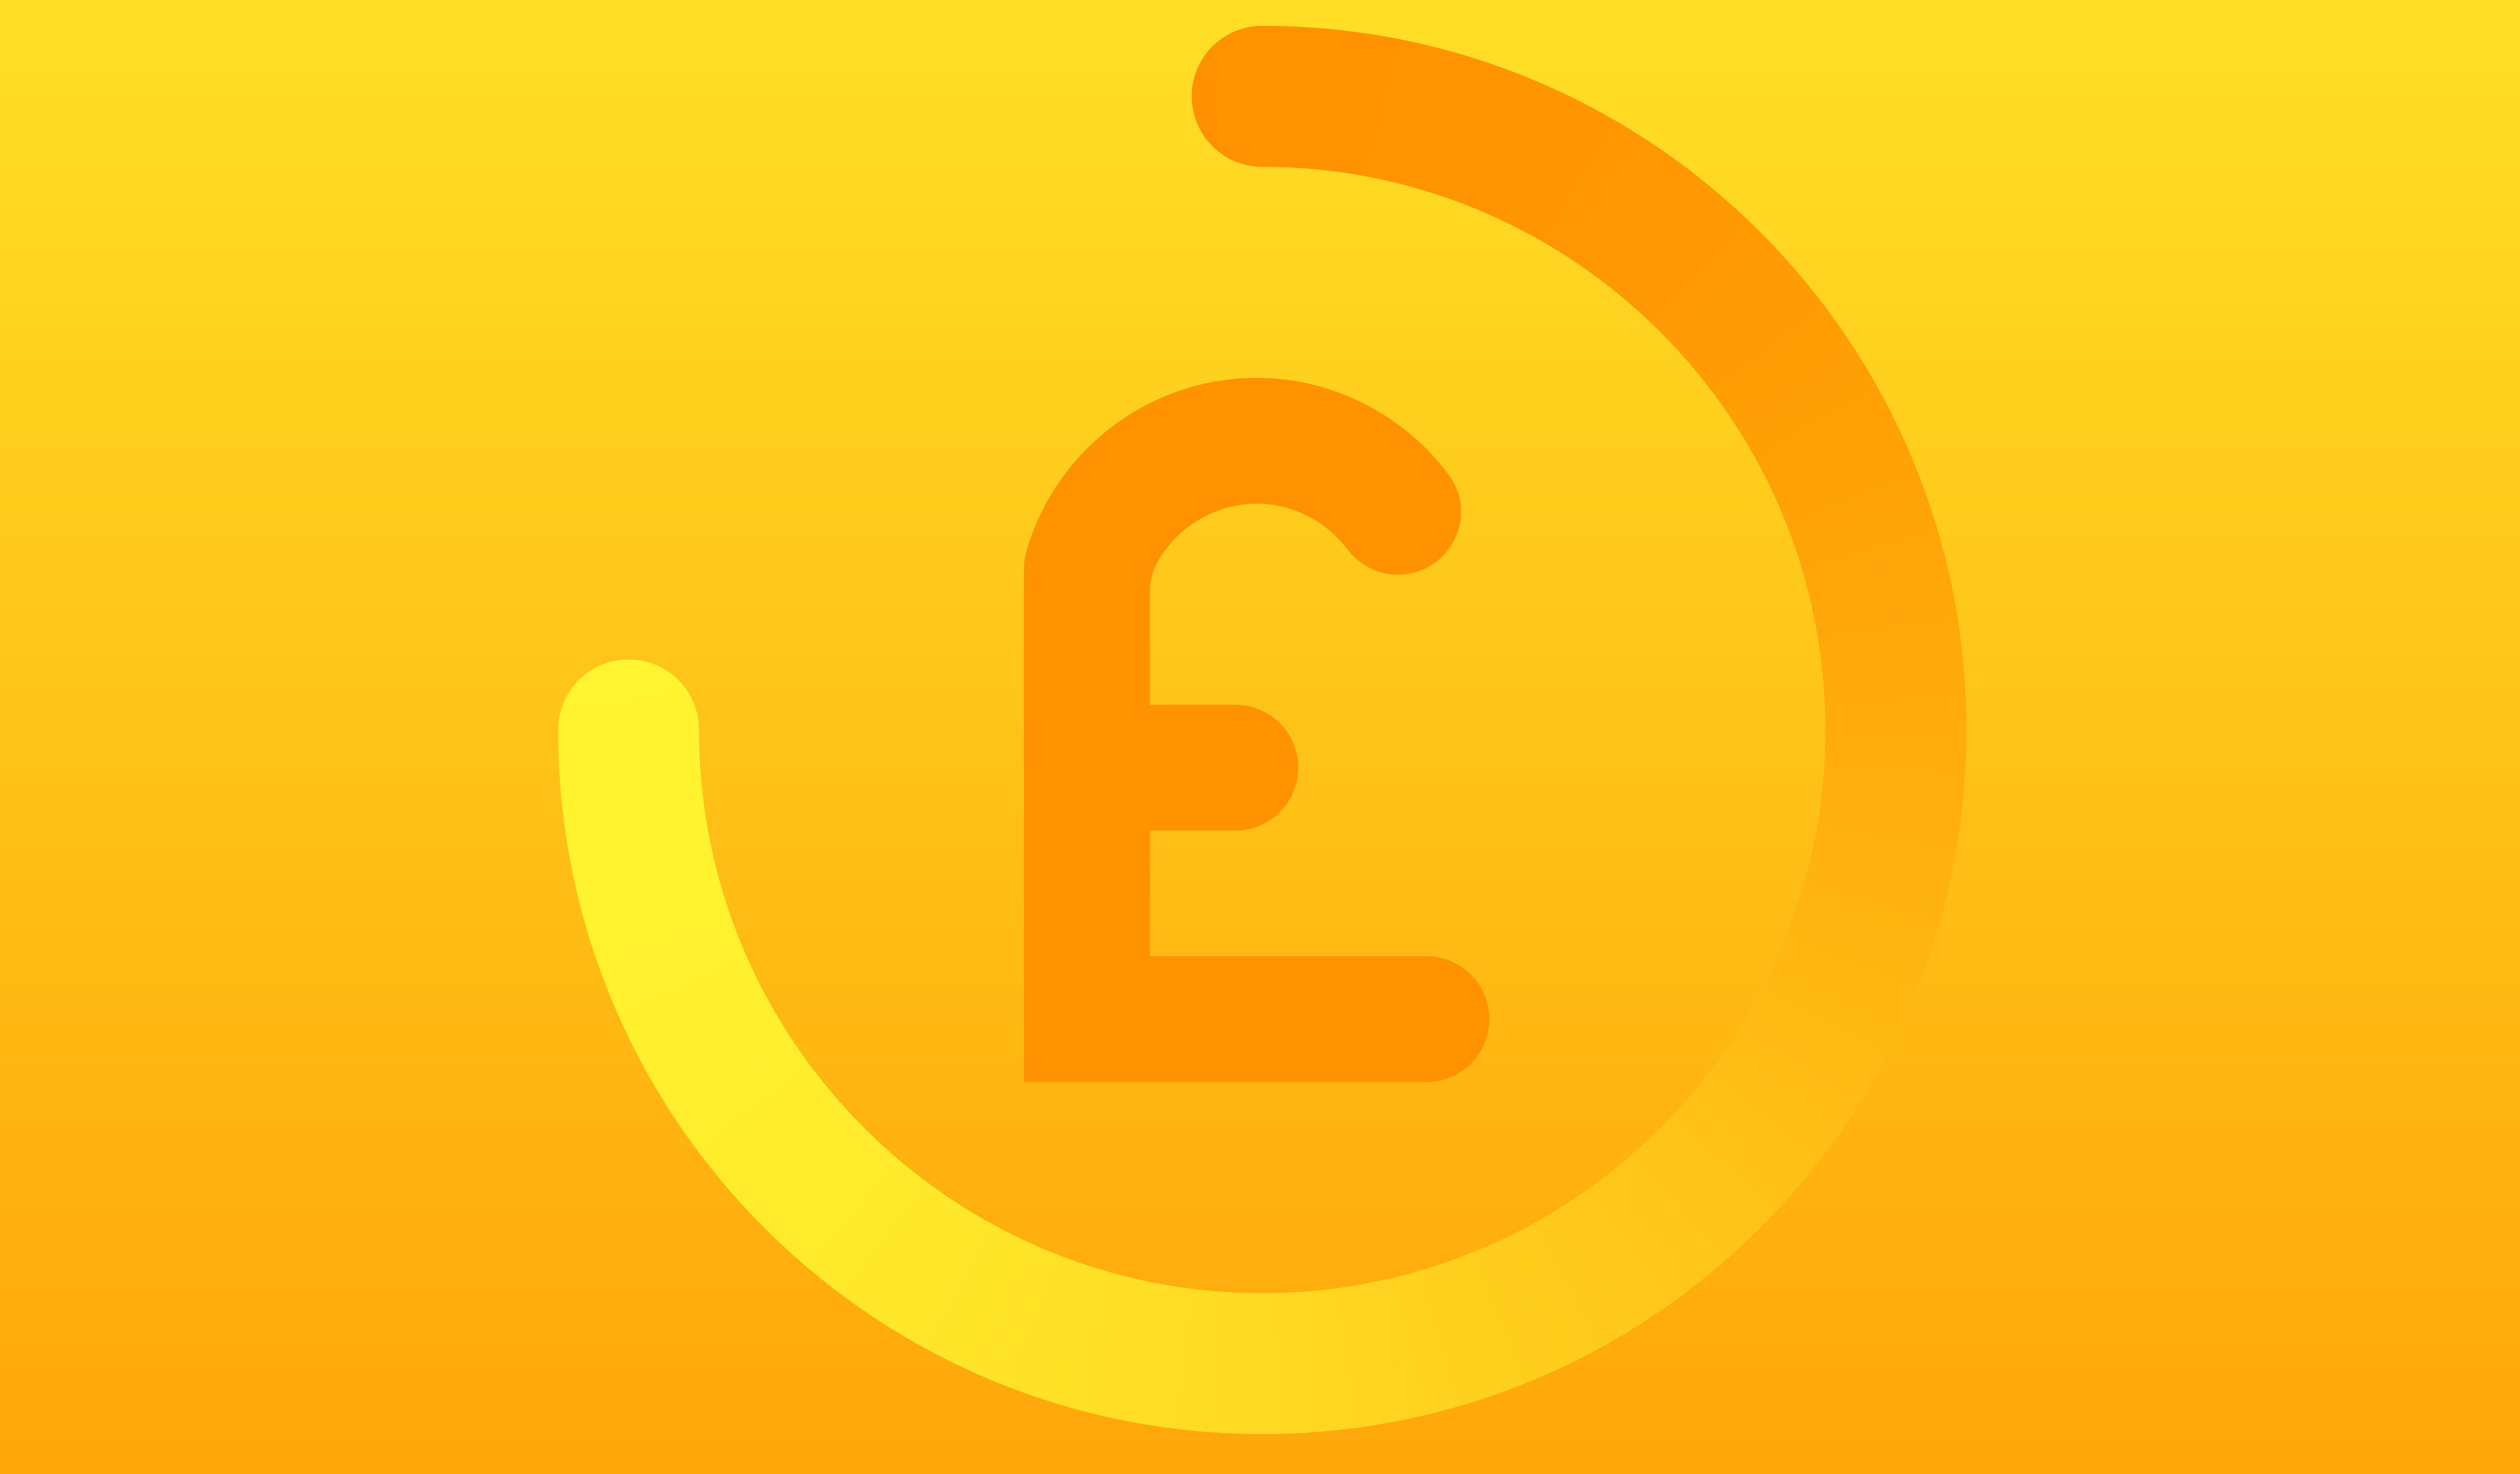 Resourced icon